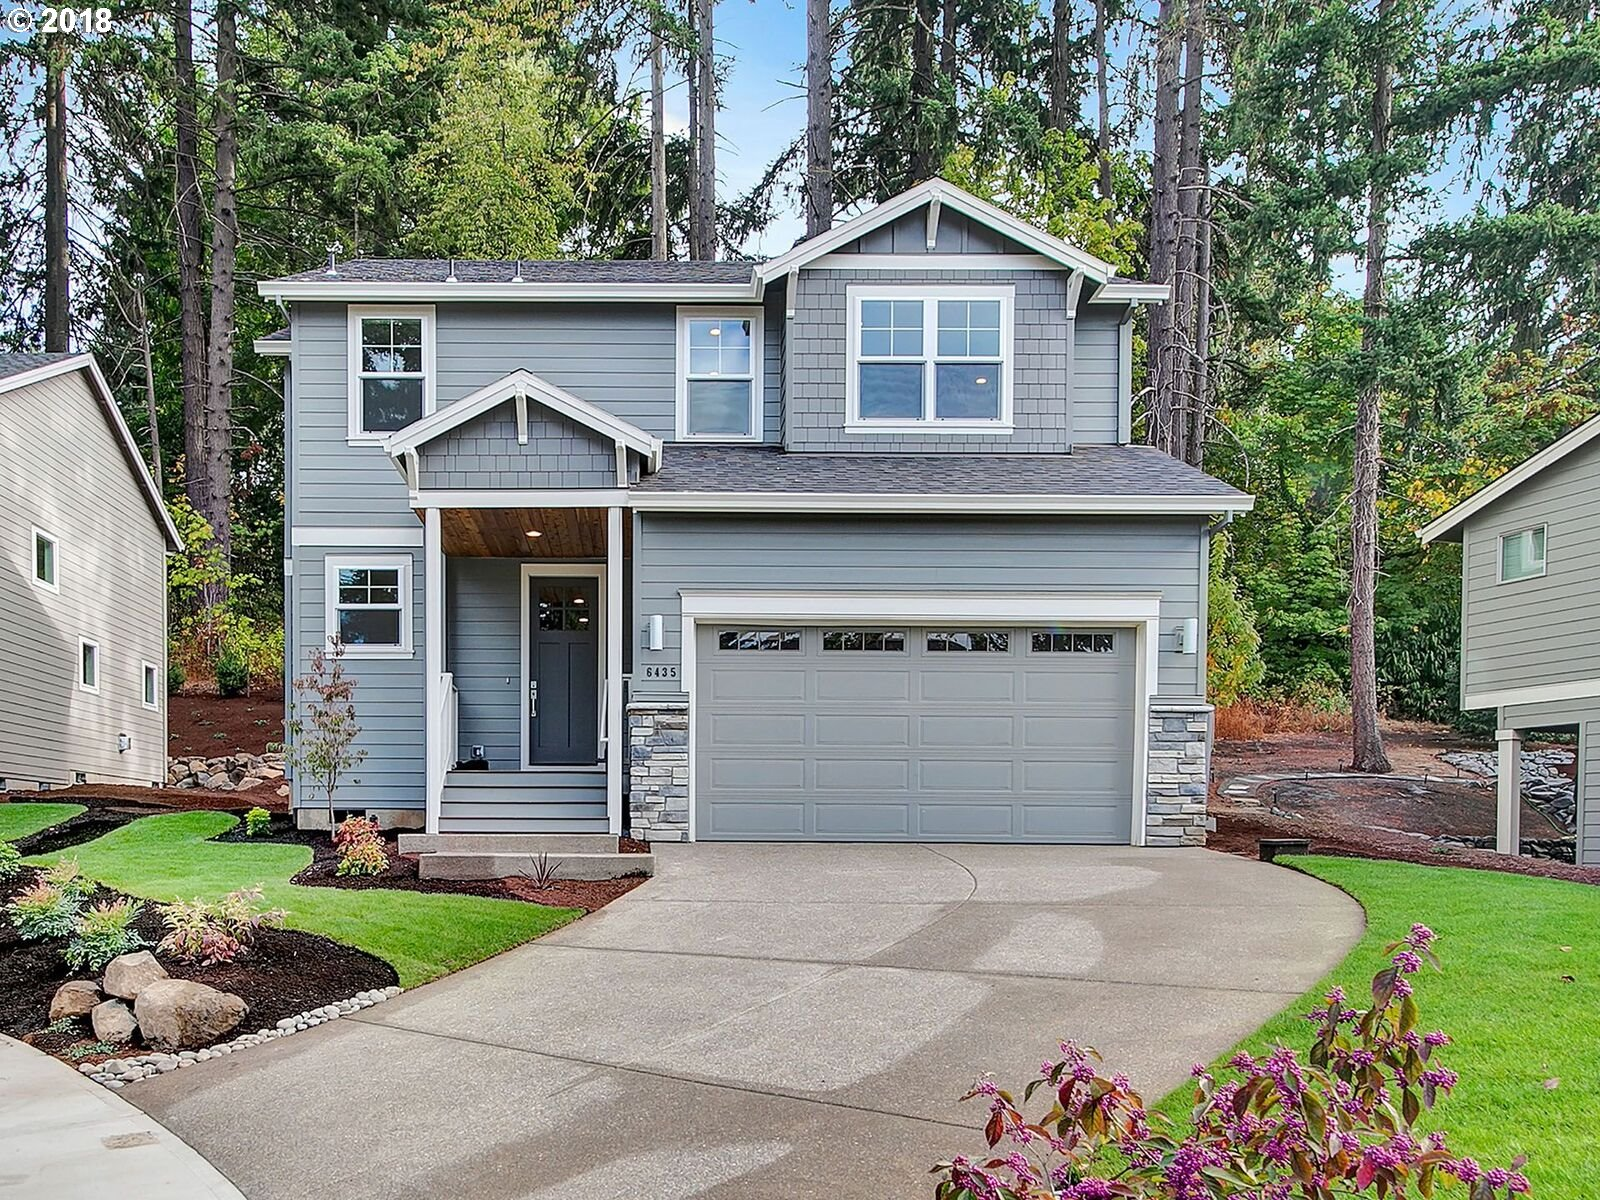 6435 Frost ST, Lake Oswego, OR 97035